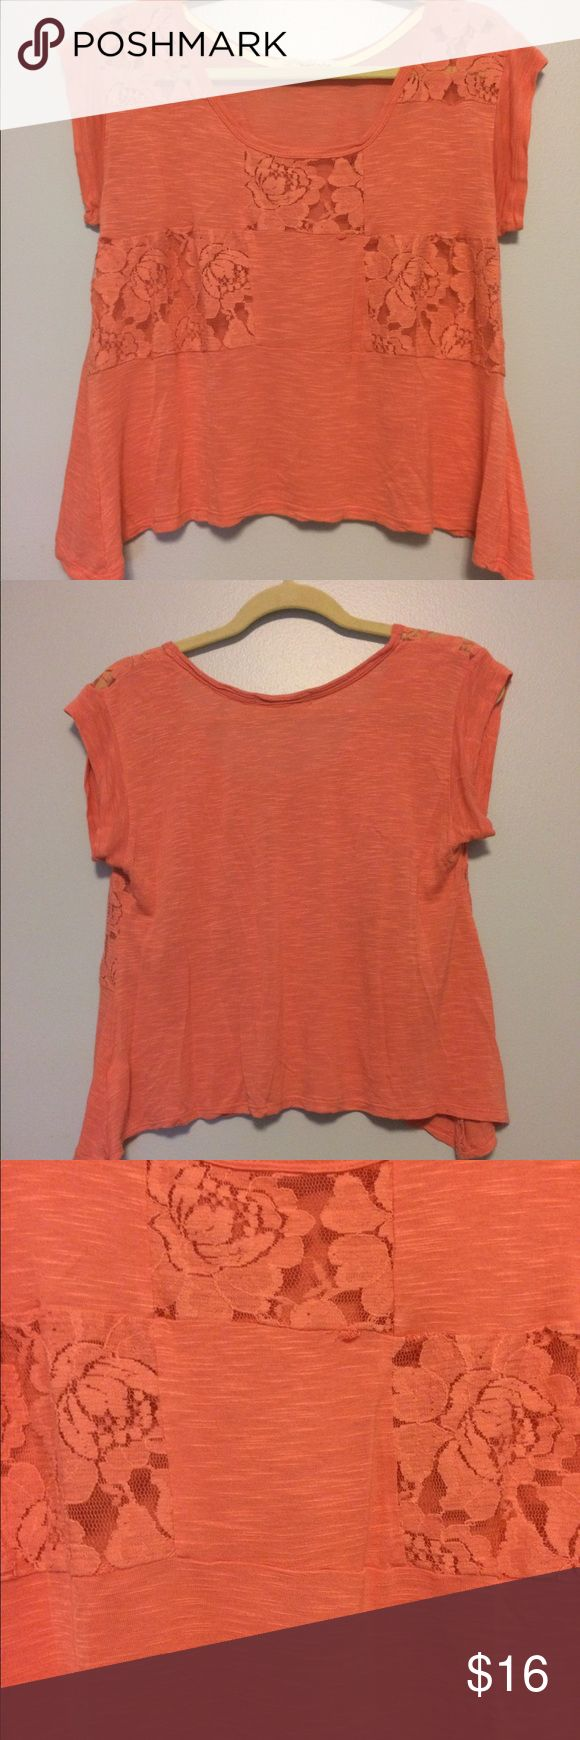 Coral shirt Loose, flowy coral t-shirt with lace patches. Rewind  Tops Tees - Short Sleeve